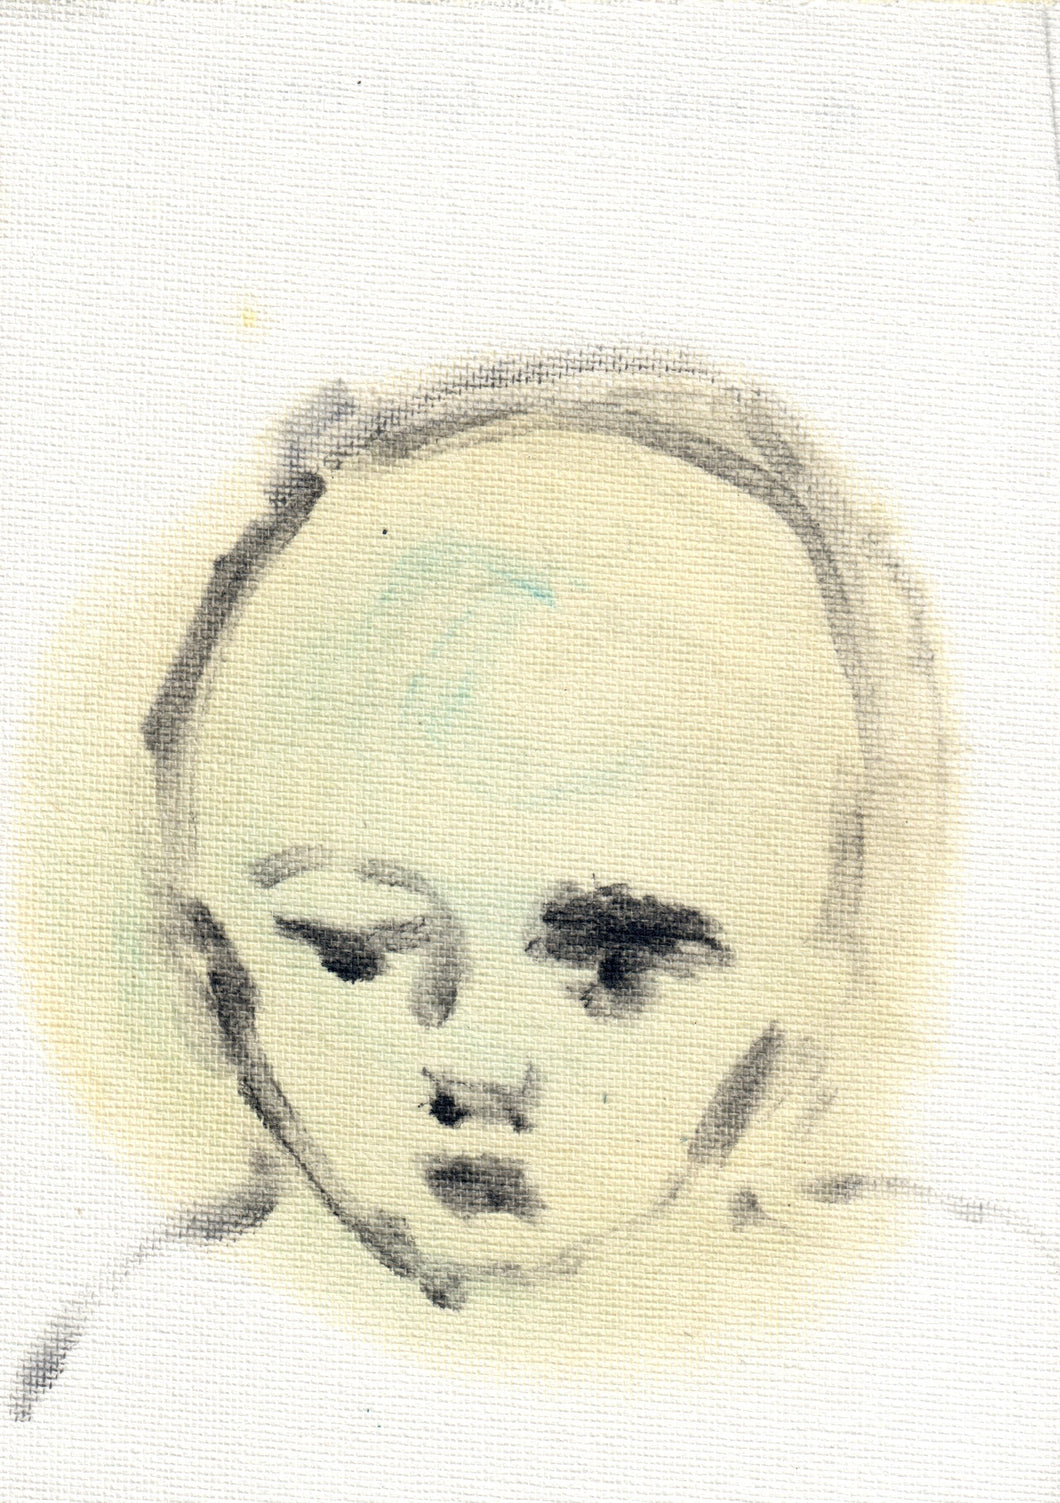 173, Niki Hare, Untitled (Child's head), Mixed media on canvas 178x125mm